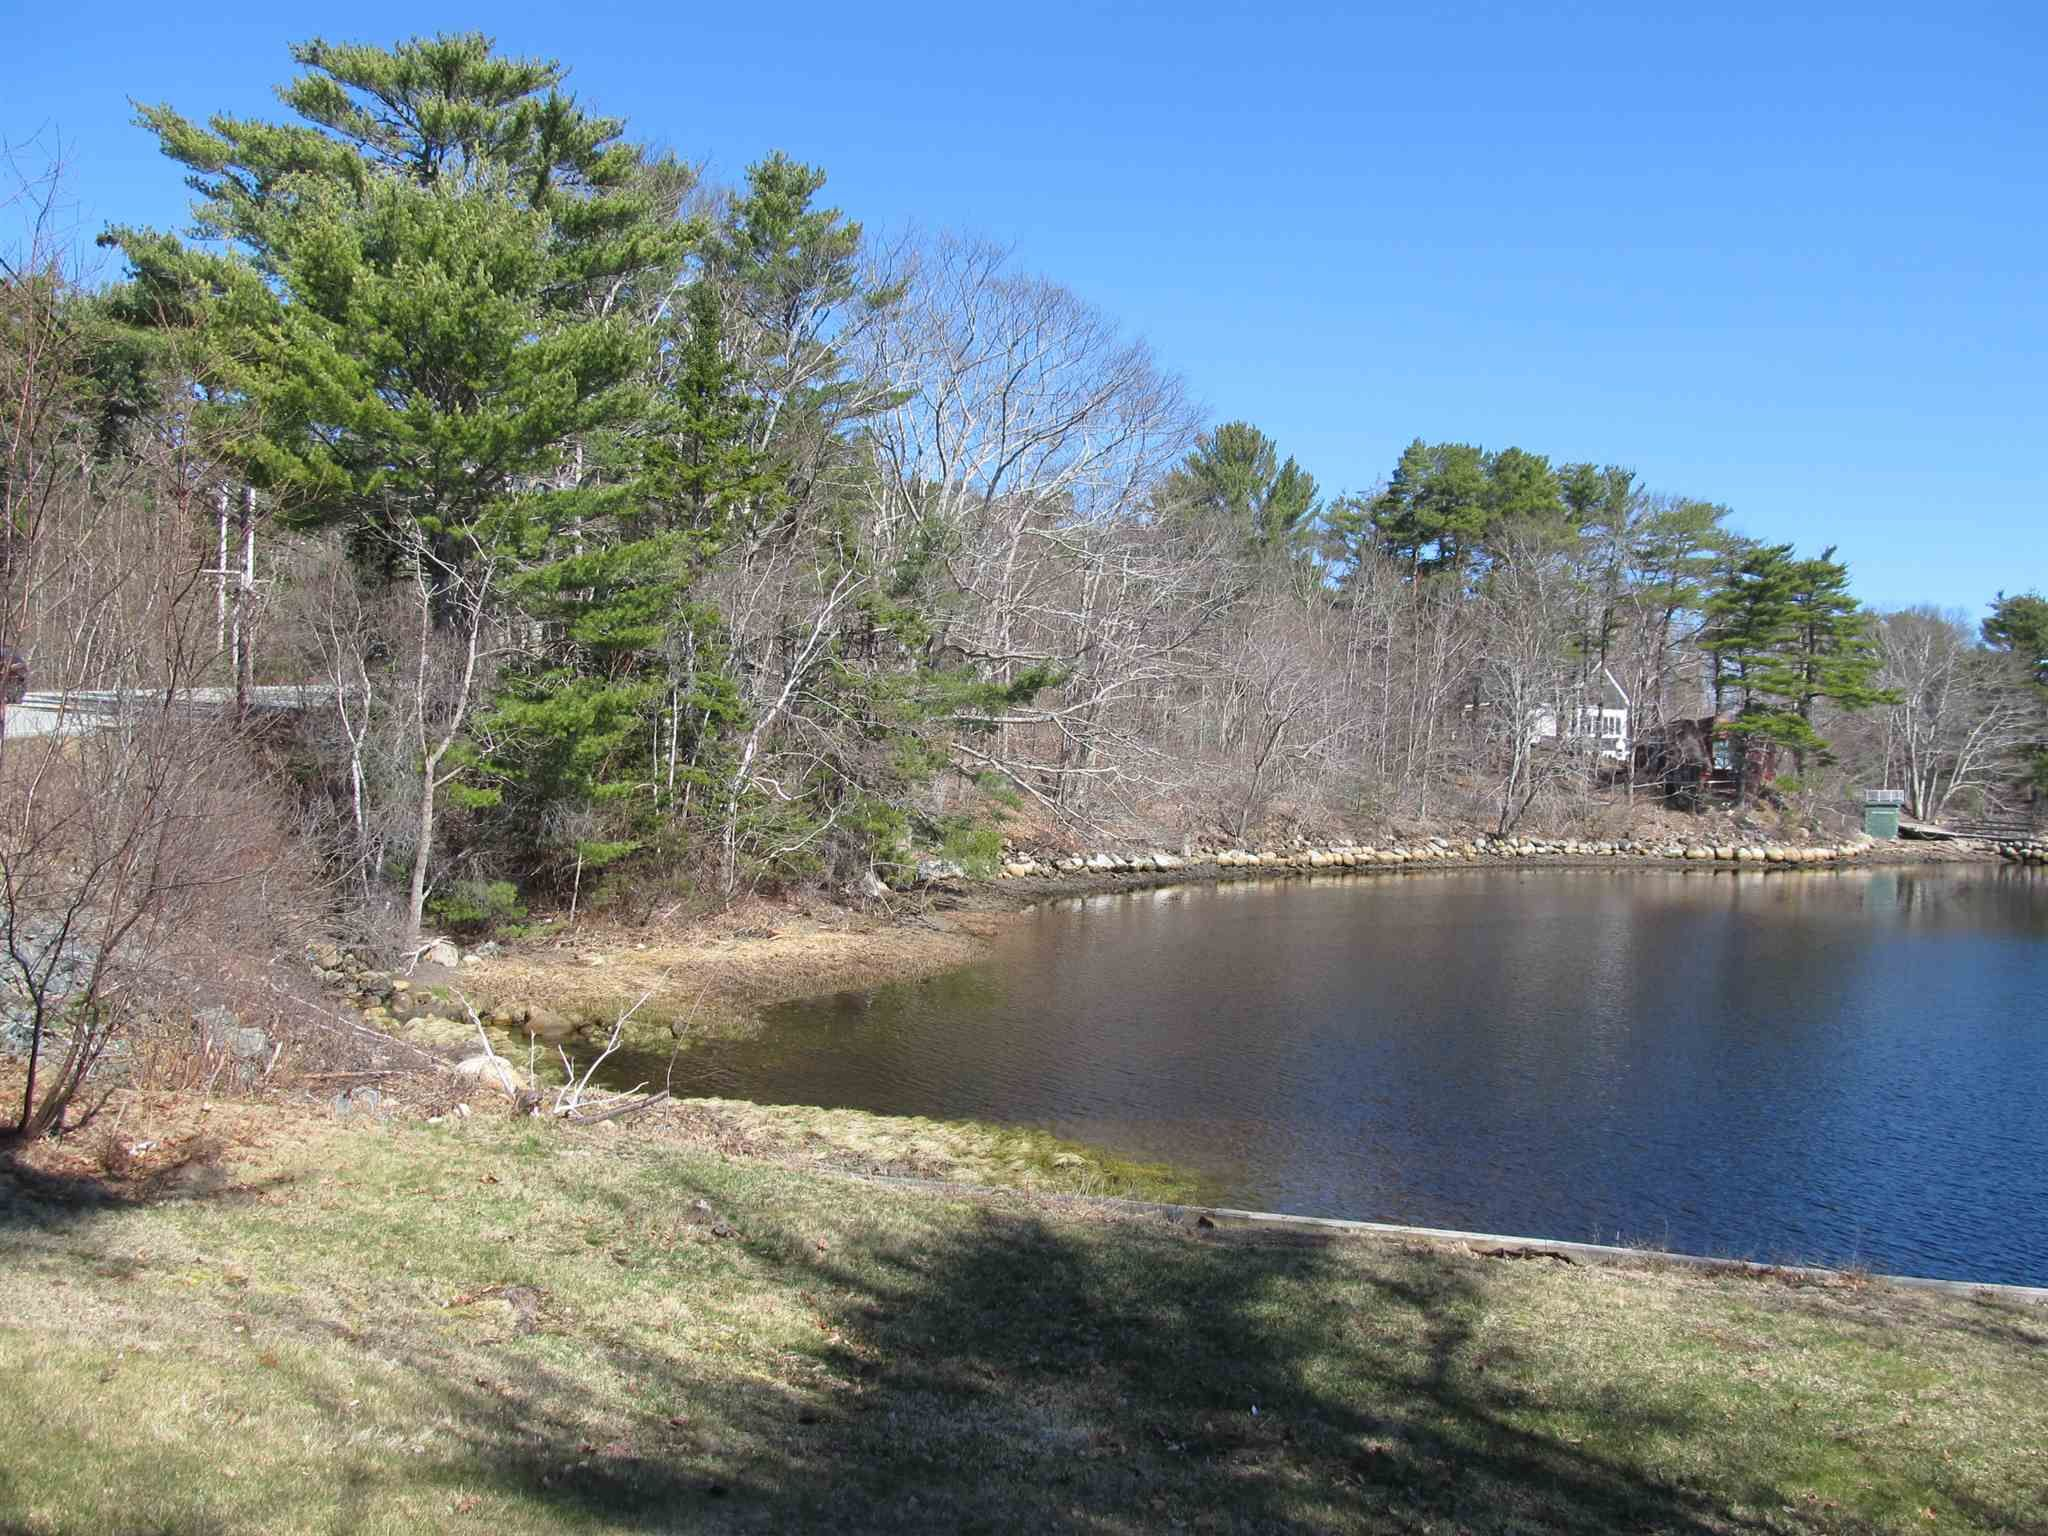 Main Photo: Lot 1 Highway 331 in Conquerall Bank: 405-Lunenburg County Vacant Land for sale (South Shore)  : MLS®# 202107962